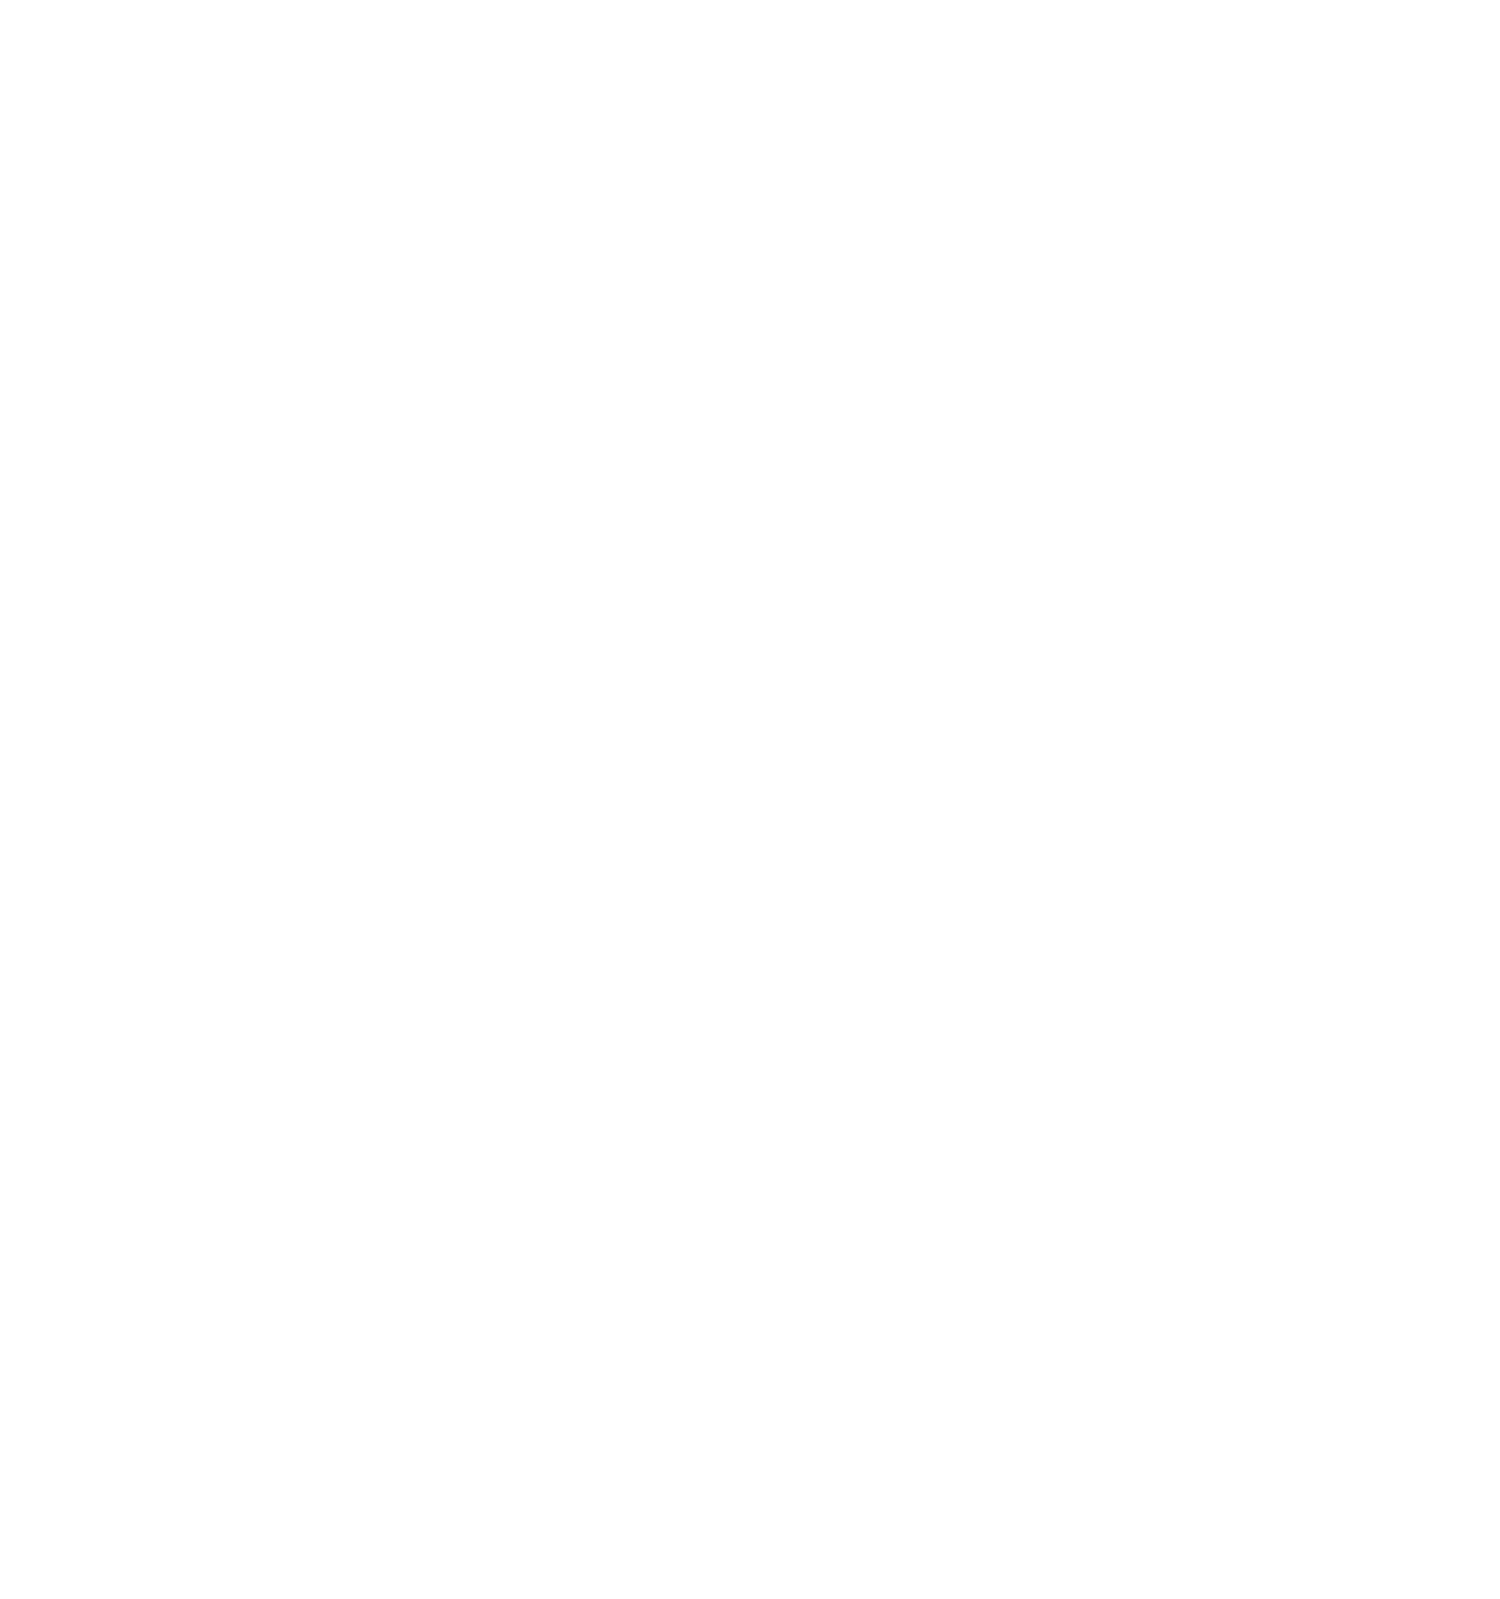 Youth Era